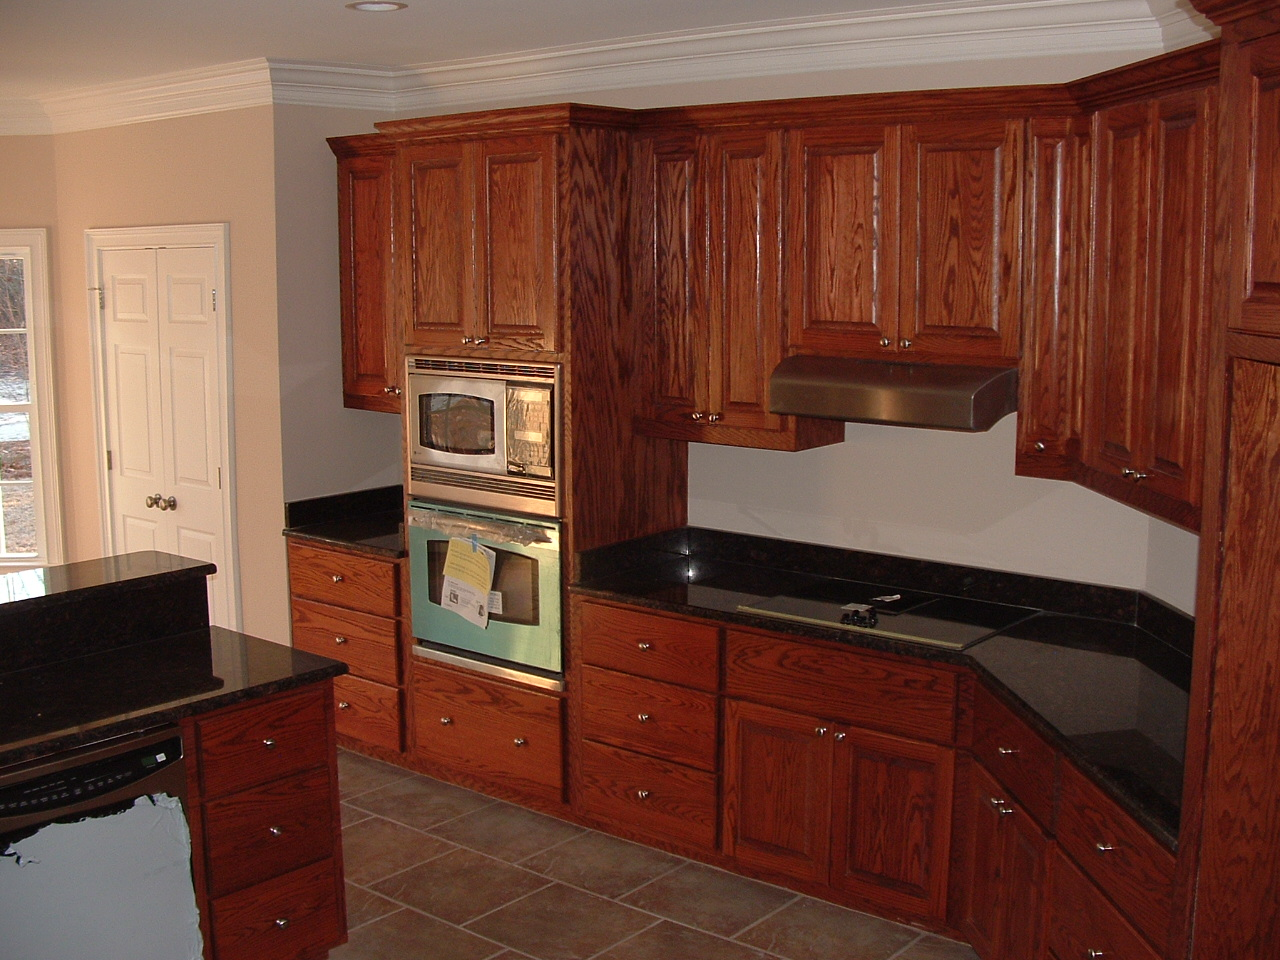 Drawers for kitchen cabinets Photo - 3